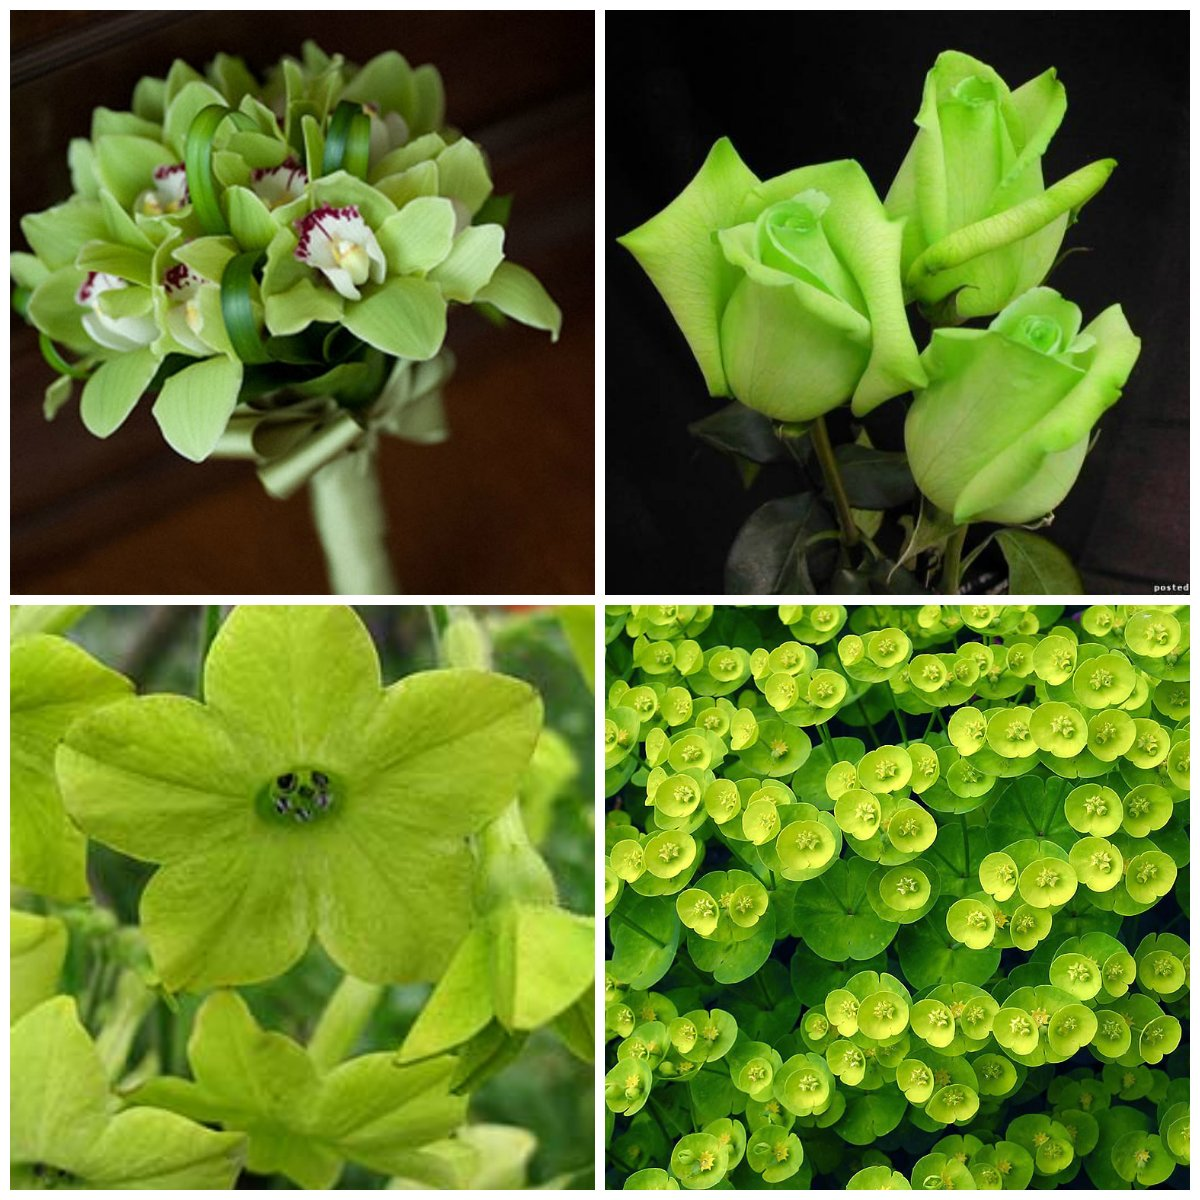 Green flowers are the best anti-stress